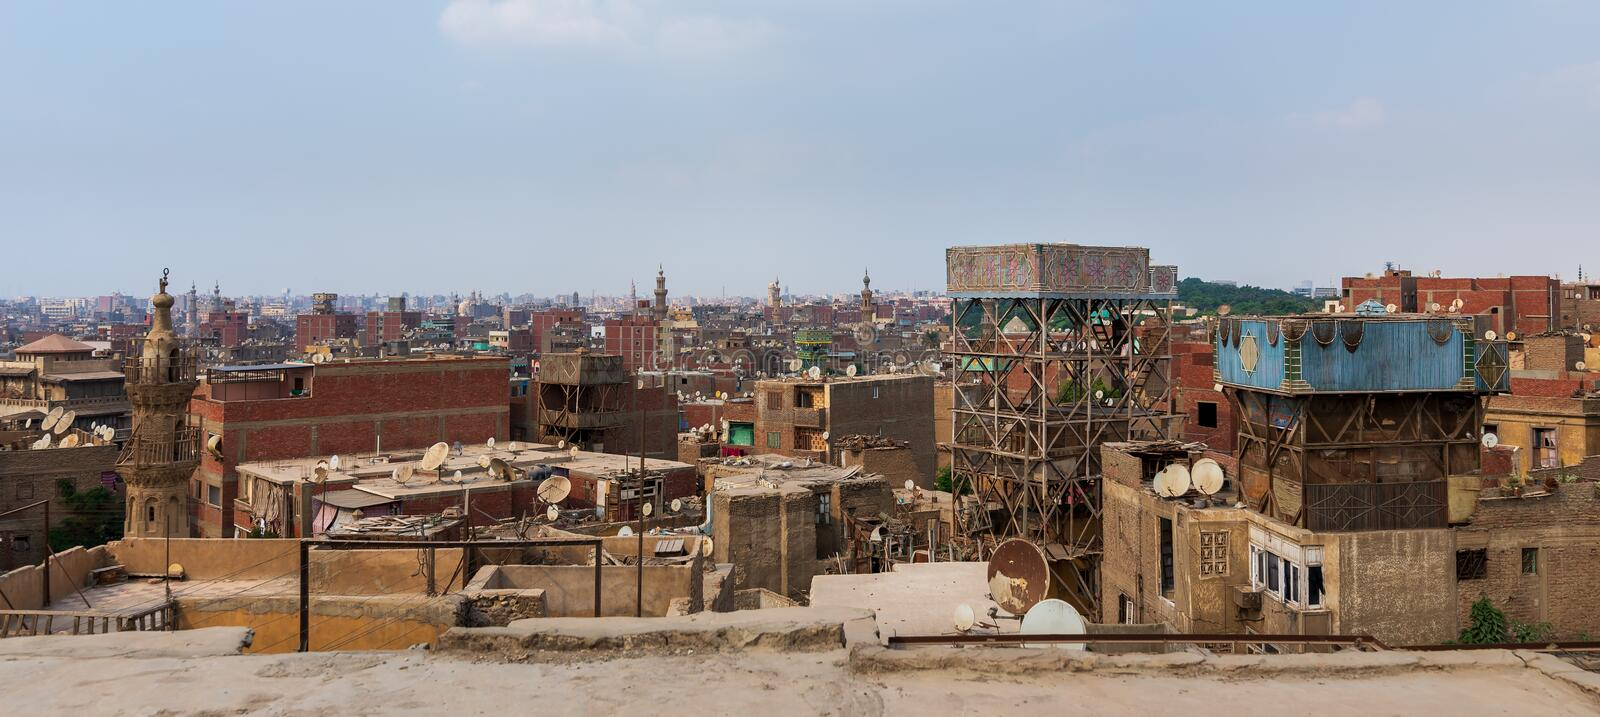 Weathered roofs of houses in old Cairo, Egypt. Shabby buildings with satellite dishes on rooftops located against blue sky in ancient city of Cairo, Egypt royalty free stock photo